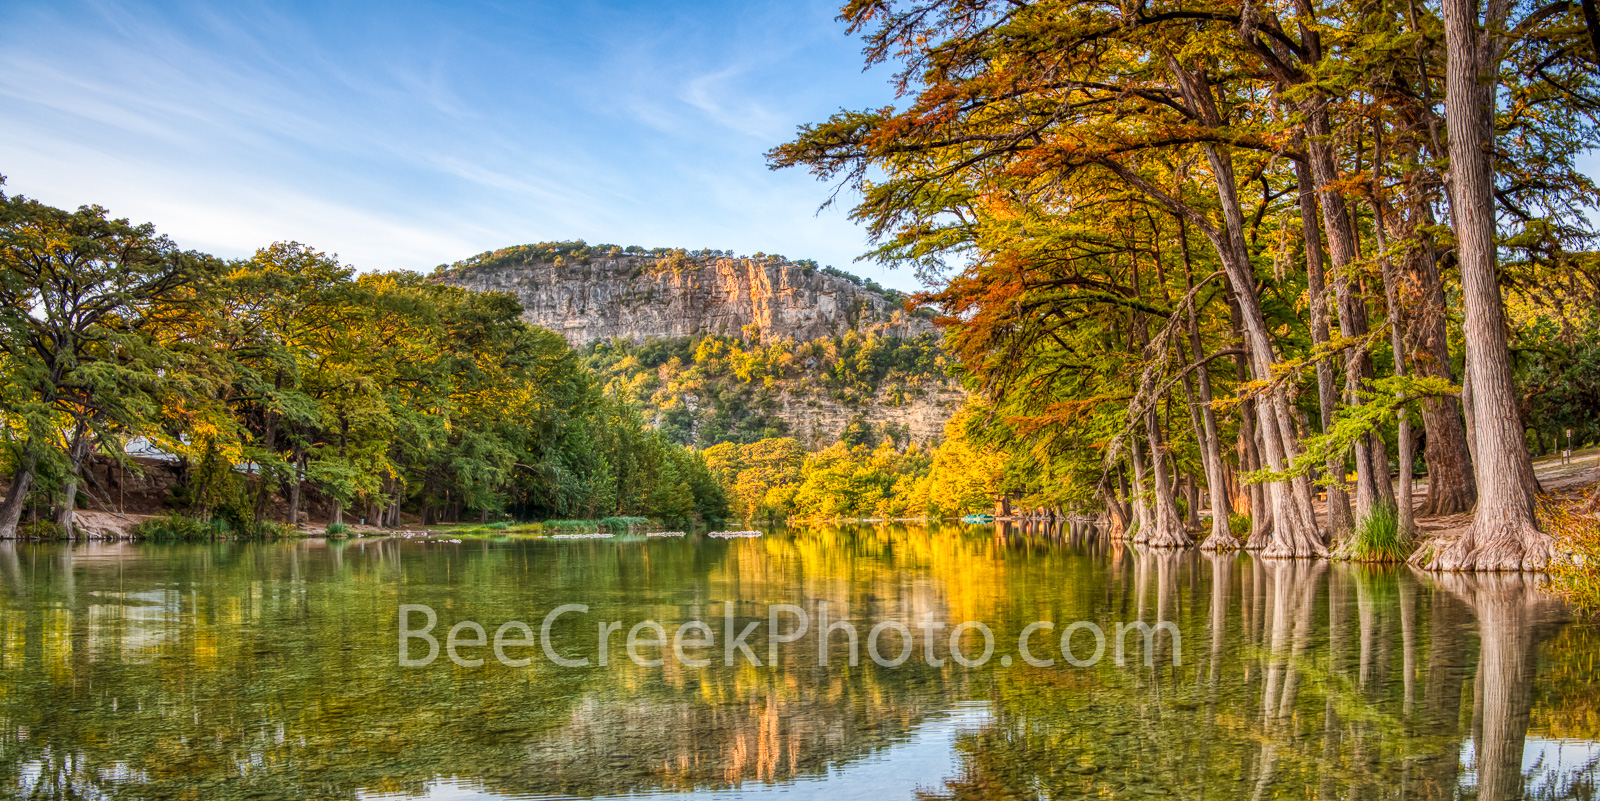 Serenity Along the Frio Pano - We capture this on our first trip to the park as the bald cypress were starting to turn to that...